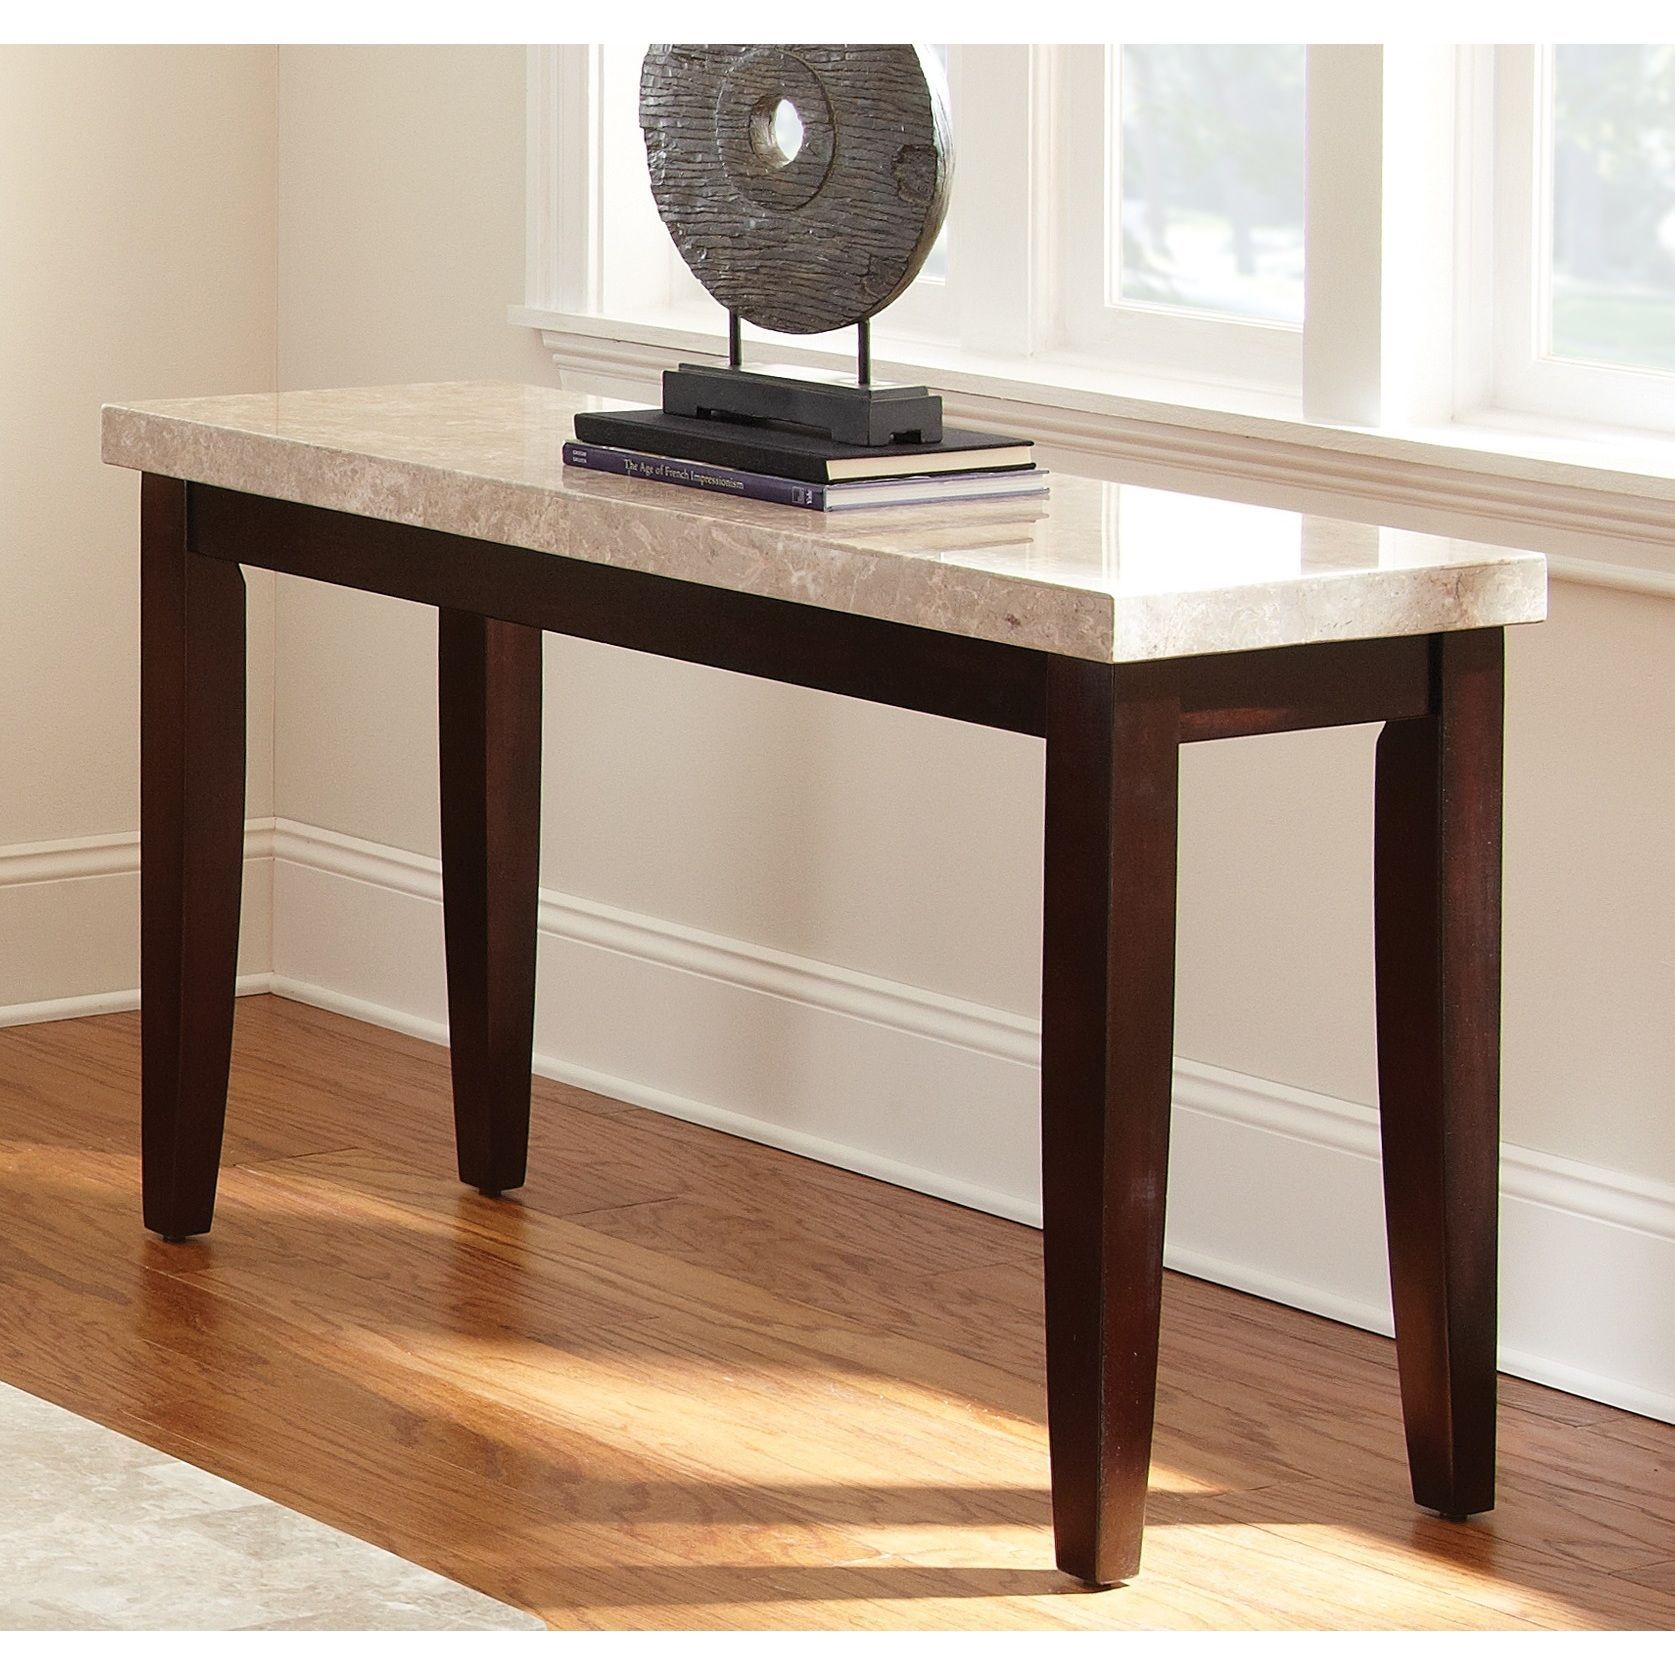 Malone marble top sofa table by greyson living by greyson living malone marble top sofa table overstock shopping great deals on coffee sofa geotapseo Images